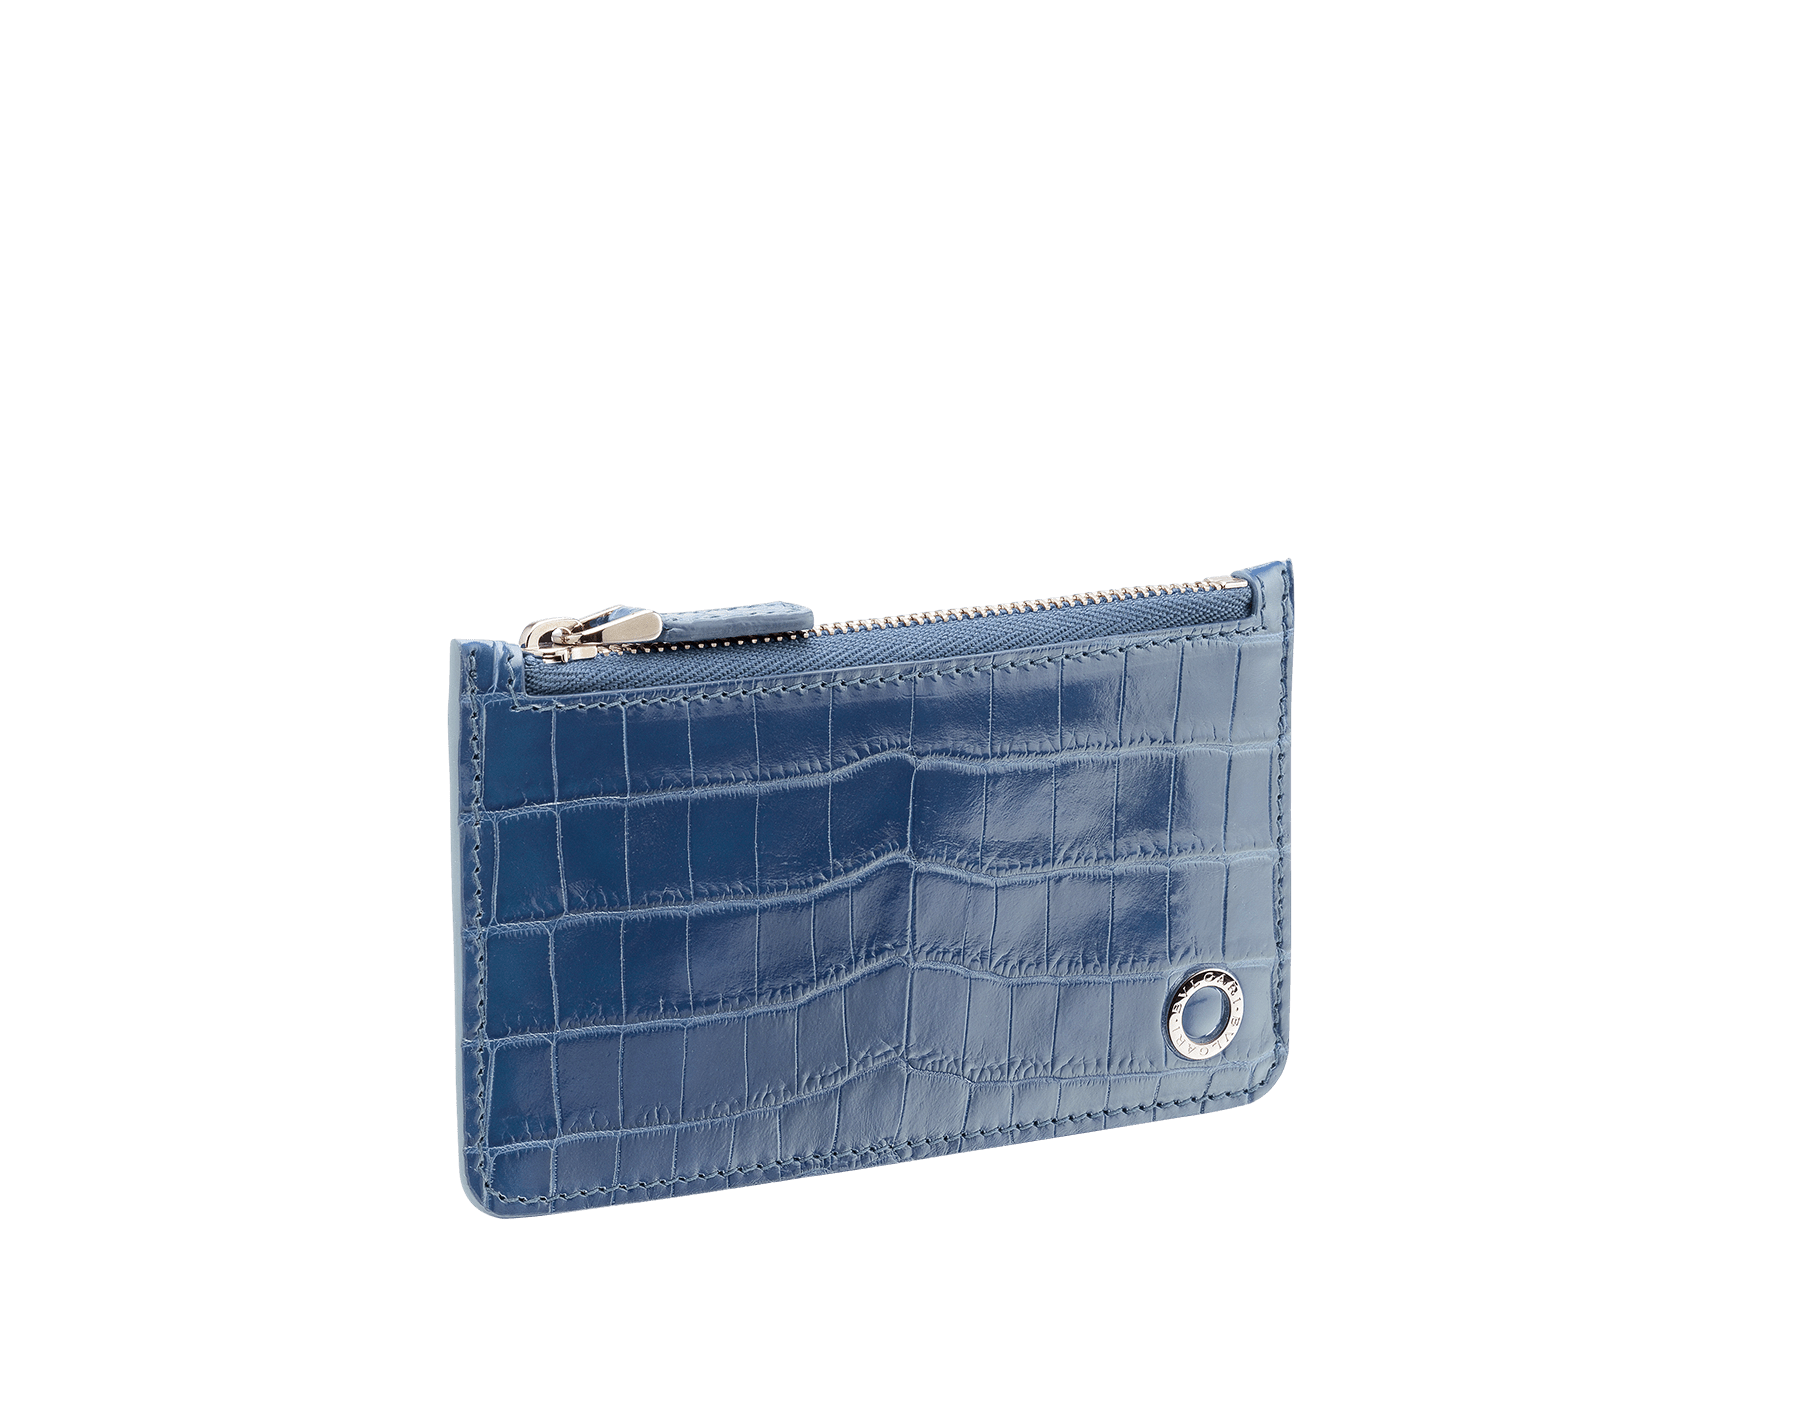 Credit card holder in Roman garnet shiny crocodile skin and denim sapphire smooth calf leather with brass palladium plated BVLGARI BVLGARI motif. BBM-CC-HOLDER-ZIP image 2